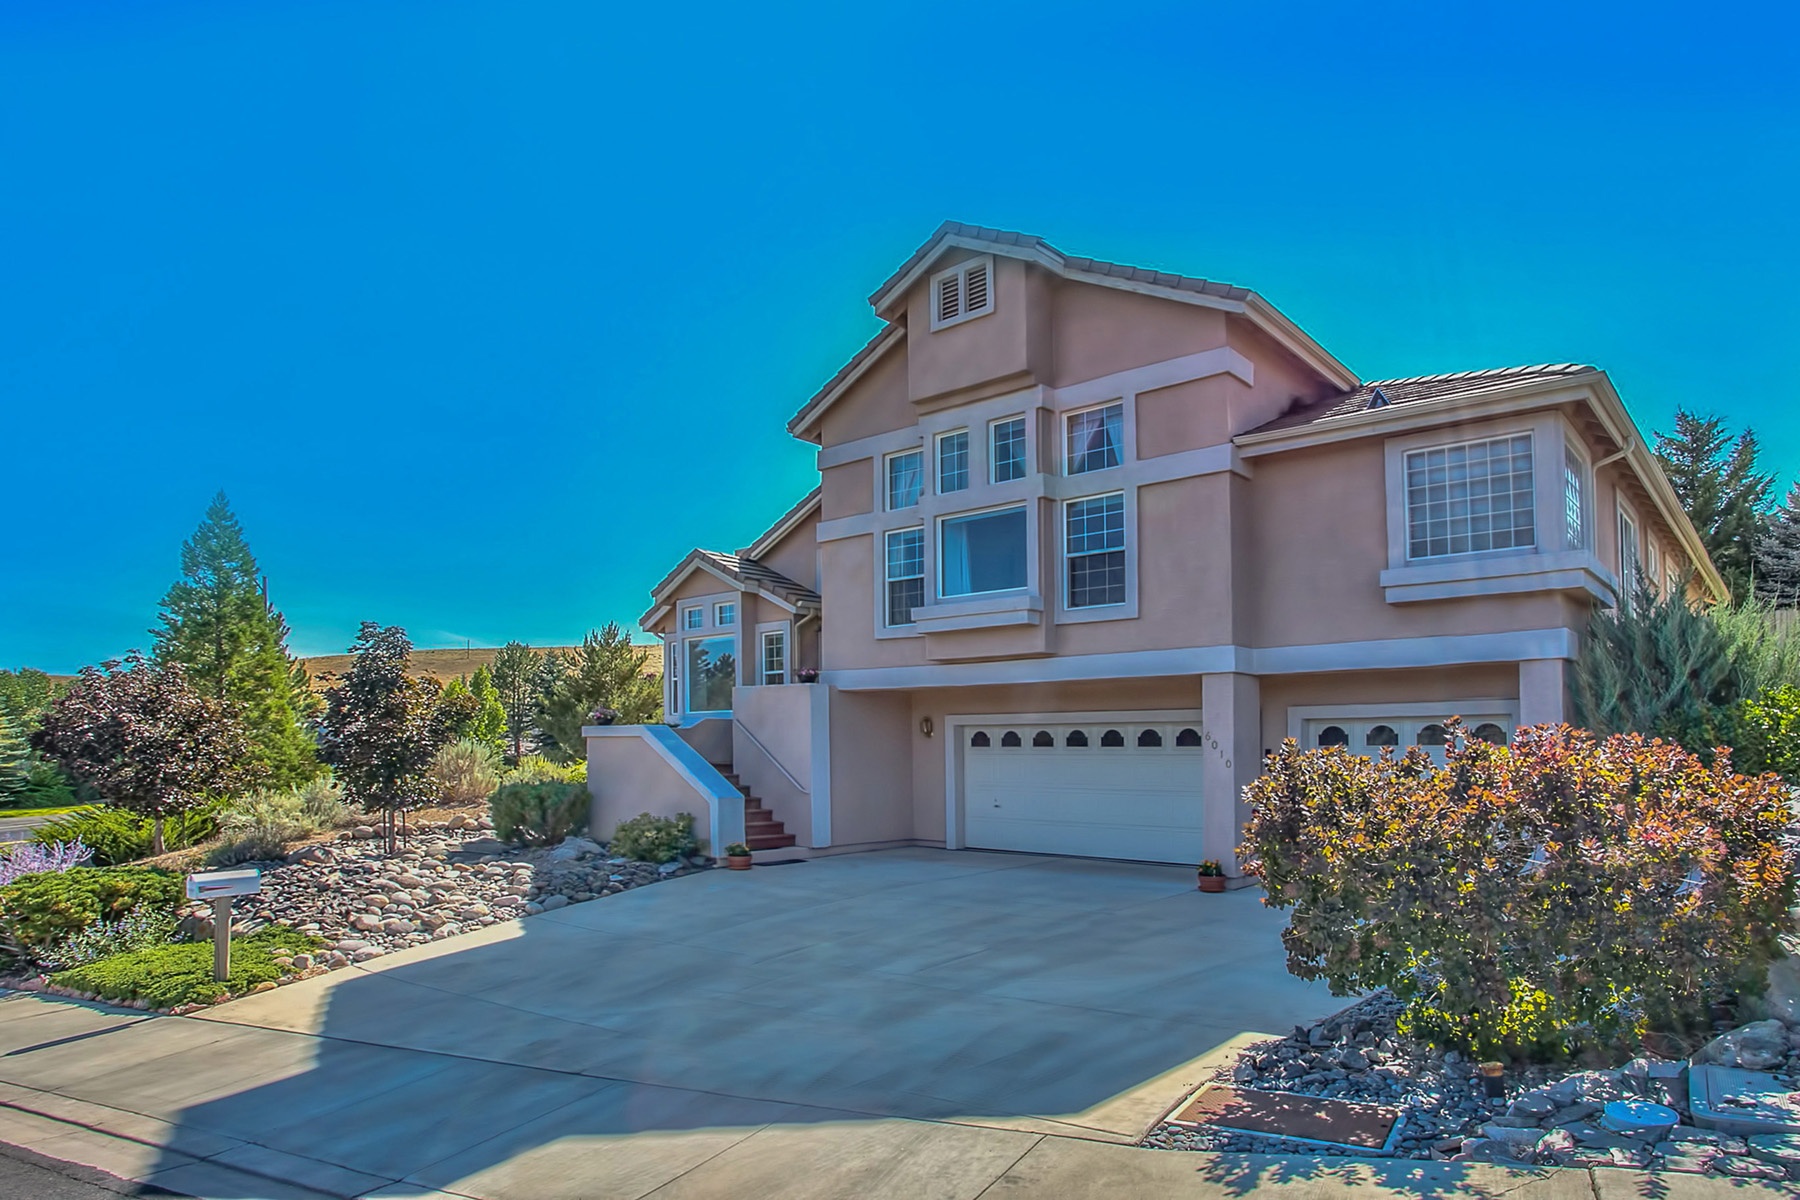 Single Family Home for Sale at 6010 Sunrise Meadows Loop 6010 Sunrise Meadows Loop Reno, Nevada 89519 United States